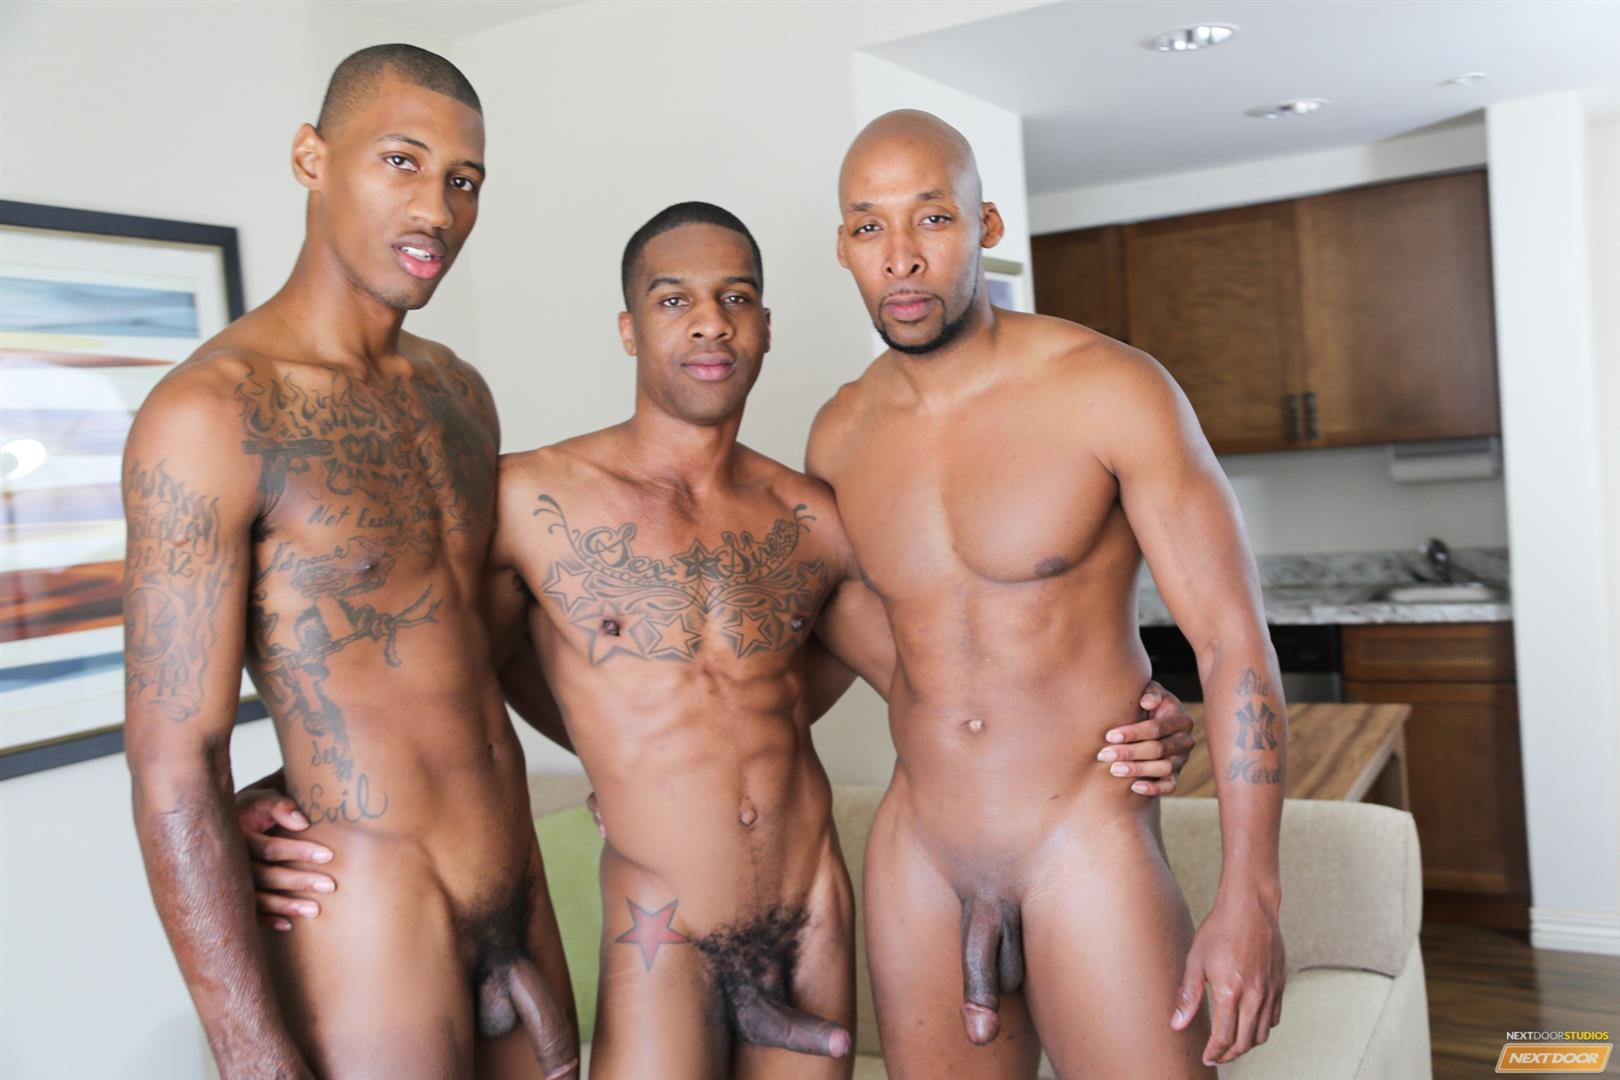 Next-Door-Ebony-Ramsees-and-King-B-and-Staxx-Big-Black-Cock-Group-Sex-Amateur-Gay-Porn-05 King B Takes Two Big Black Cocks Up The Ass For His Birthday